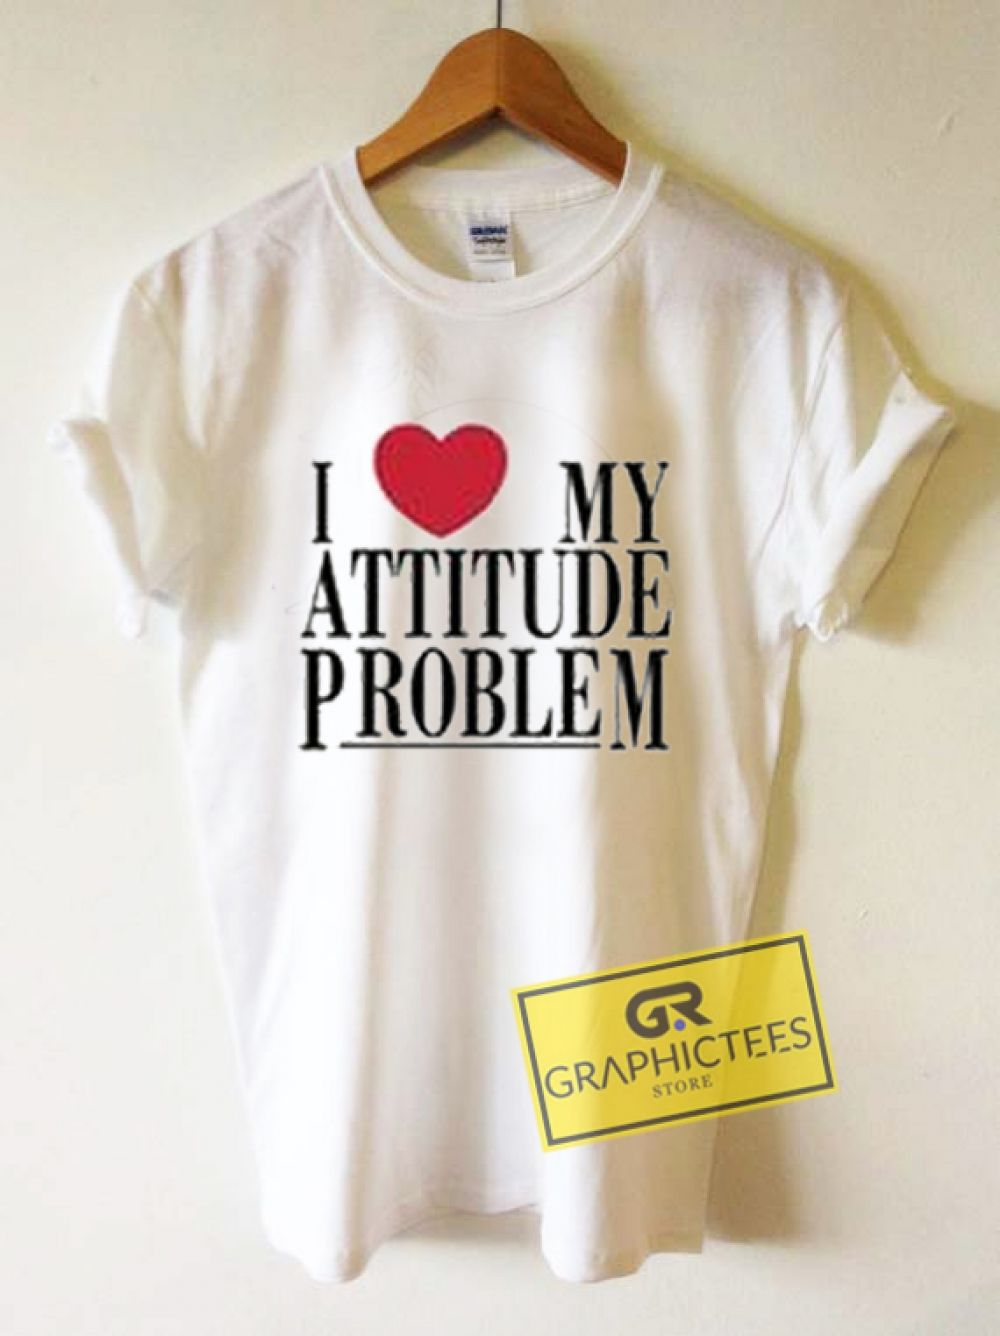 19f4386ab I Love My Attitude Problem Graphic Tees Shirts //Price: $13.50 // #graphic  tees funny